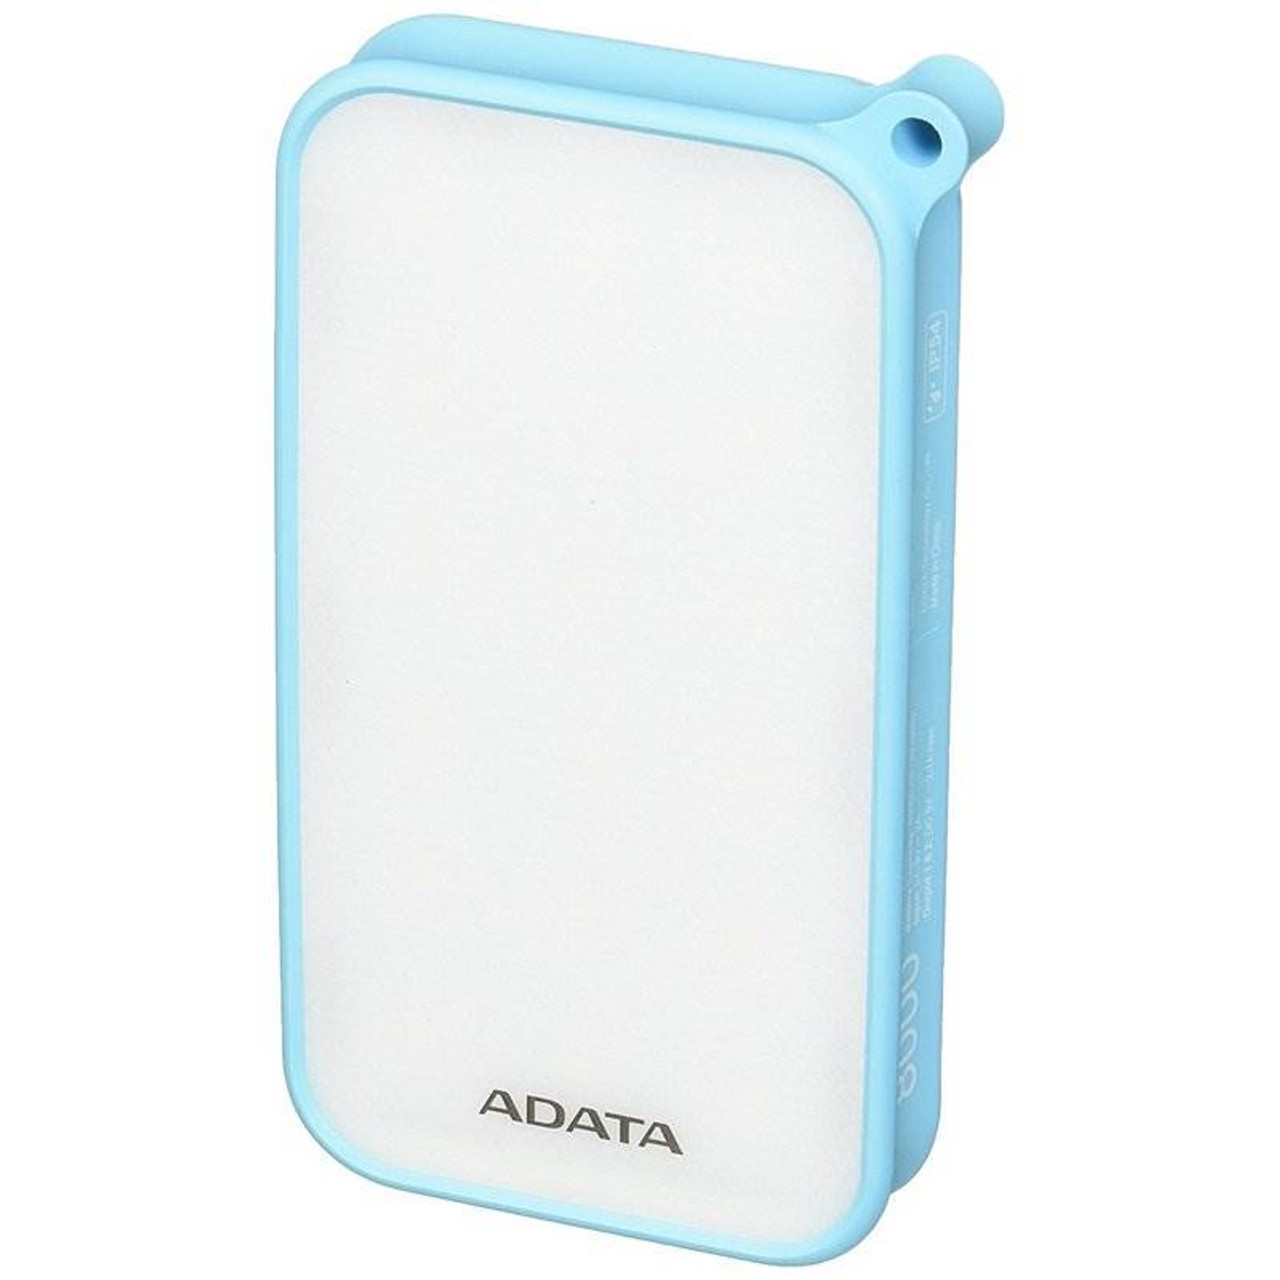 Image for Adata D8000L 8000mAh Power Bank - Blue CX Computer Superstore